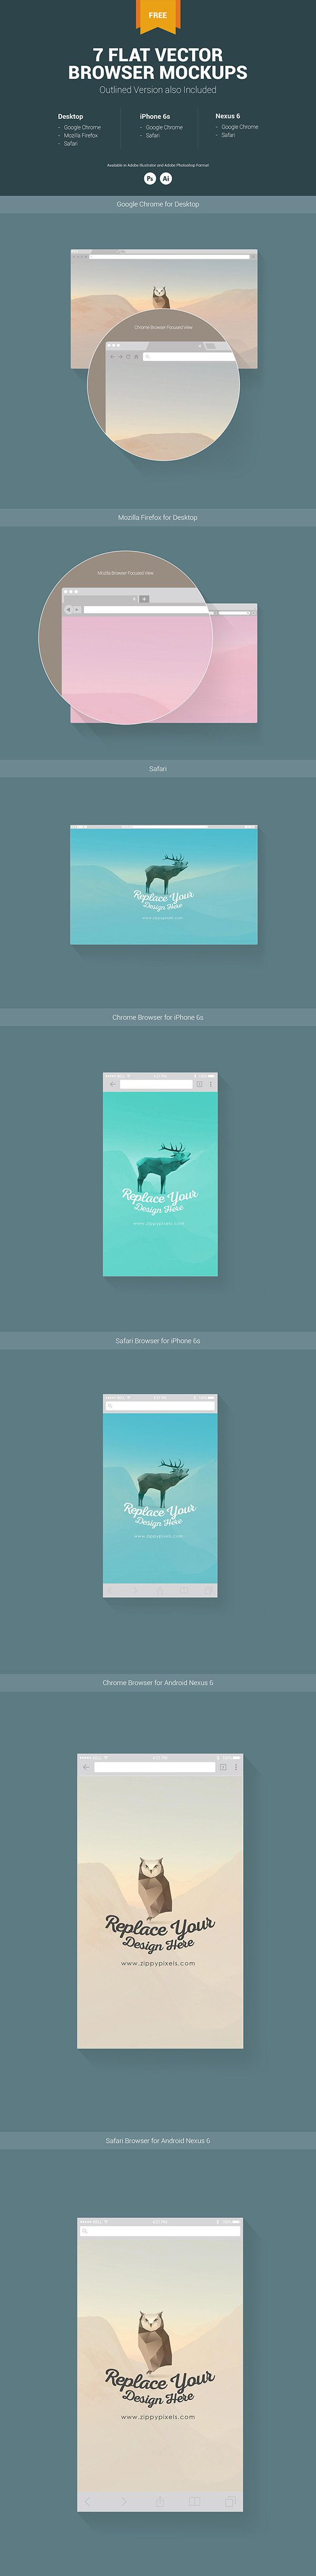 7 Free Web & Mobile Browser Mockups